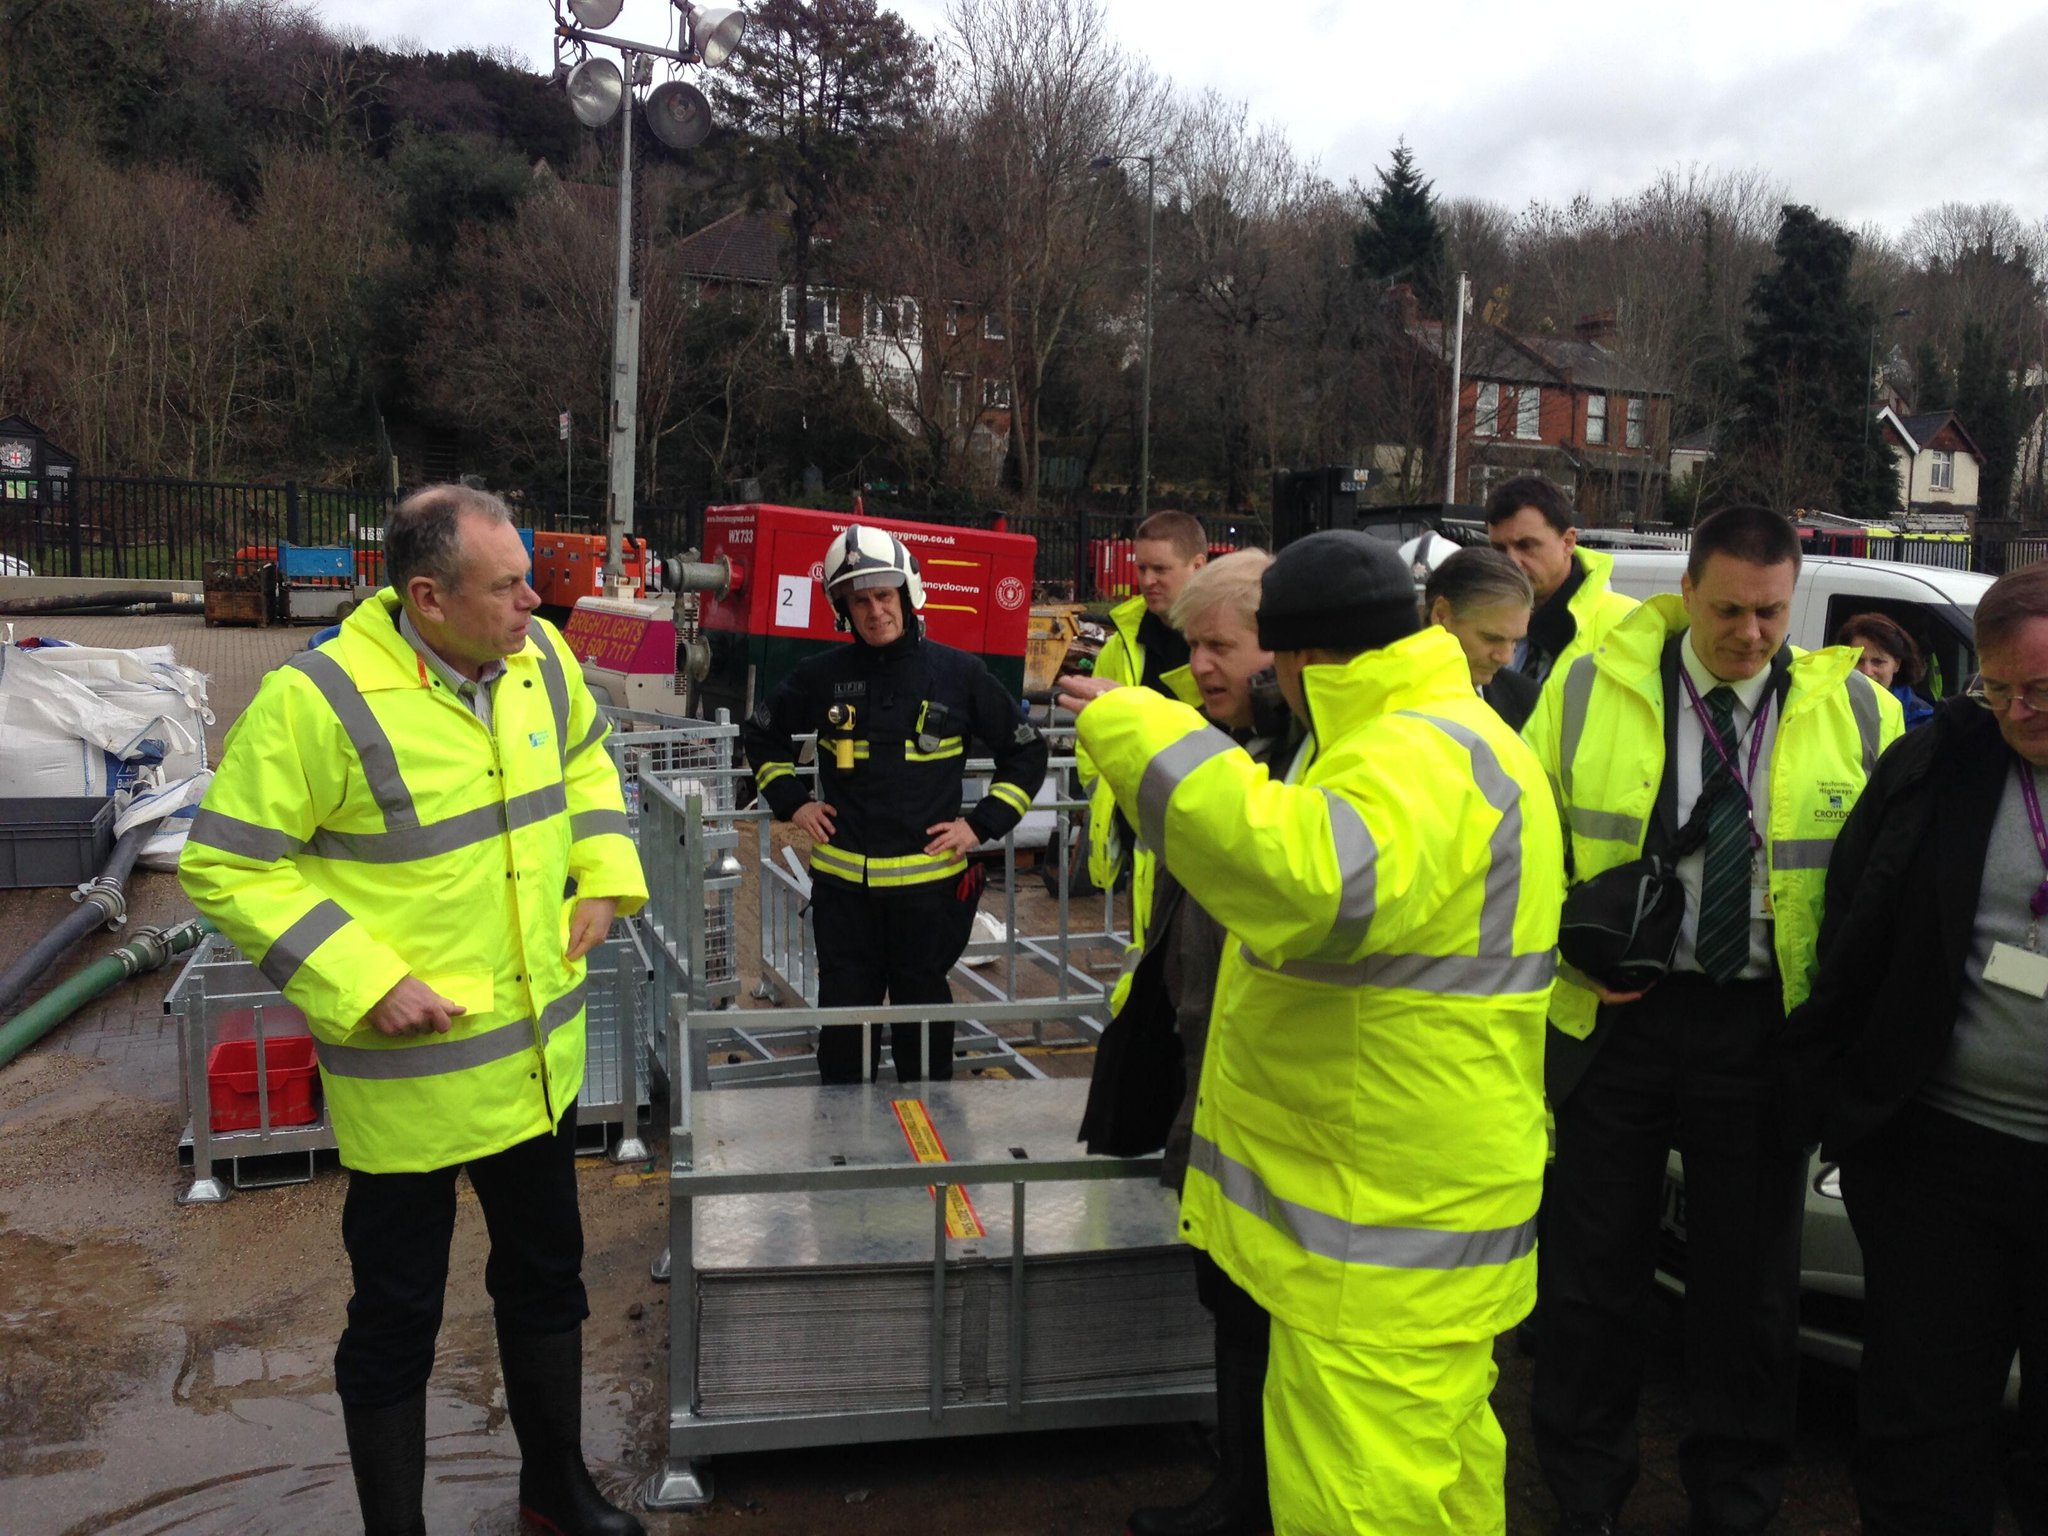 In Kenley this morning inspecting ongoing flood defence preparations–all agencies doing impressive work across Ldn http://t.co/VYYUtwMEt5